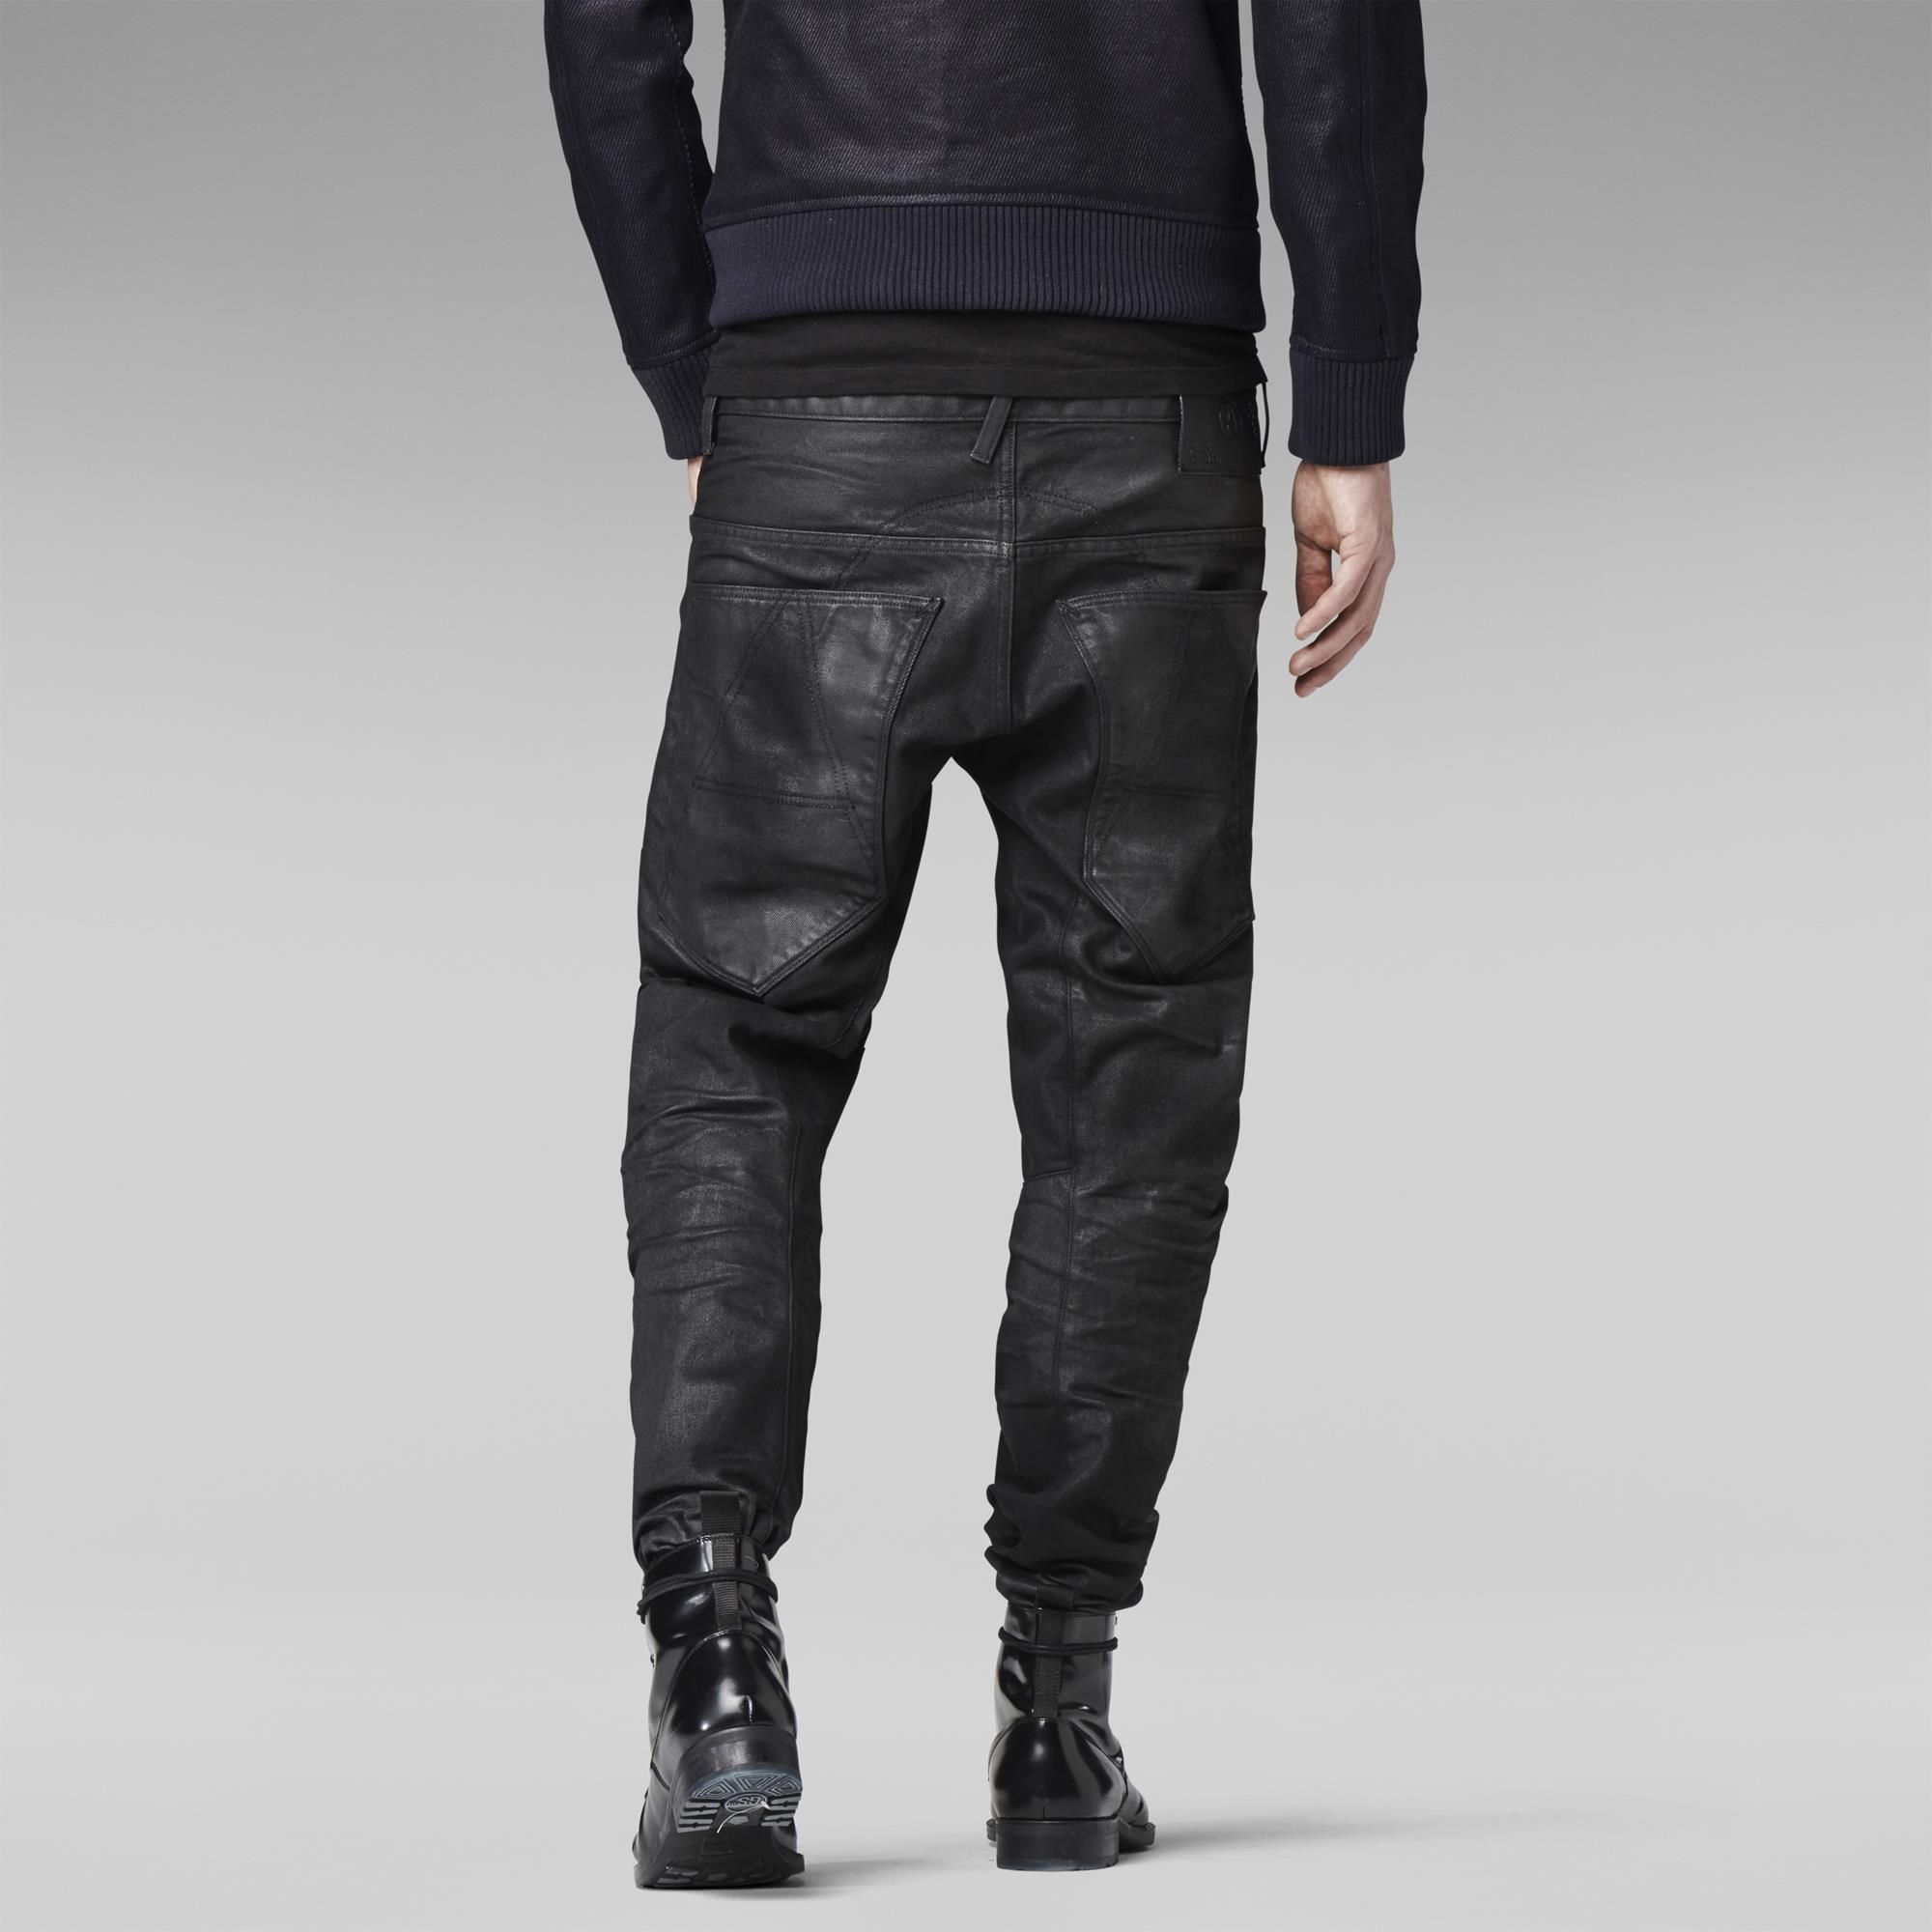 8f49f9bfe33ae4 A Crotch Tapered Jeans in 2019 | DENIM | Jeans, Tapered jeans, Raw denim